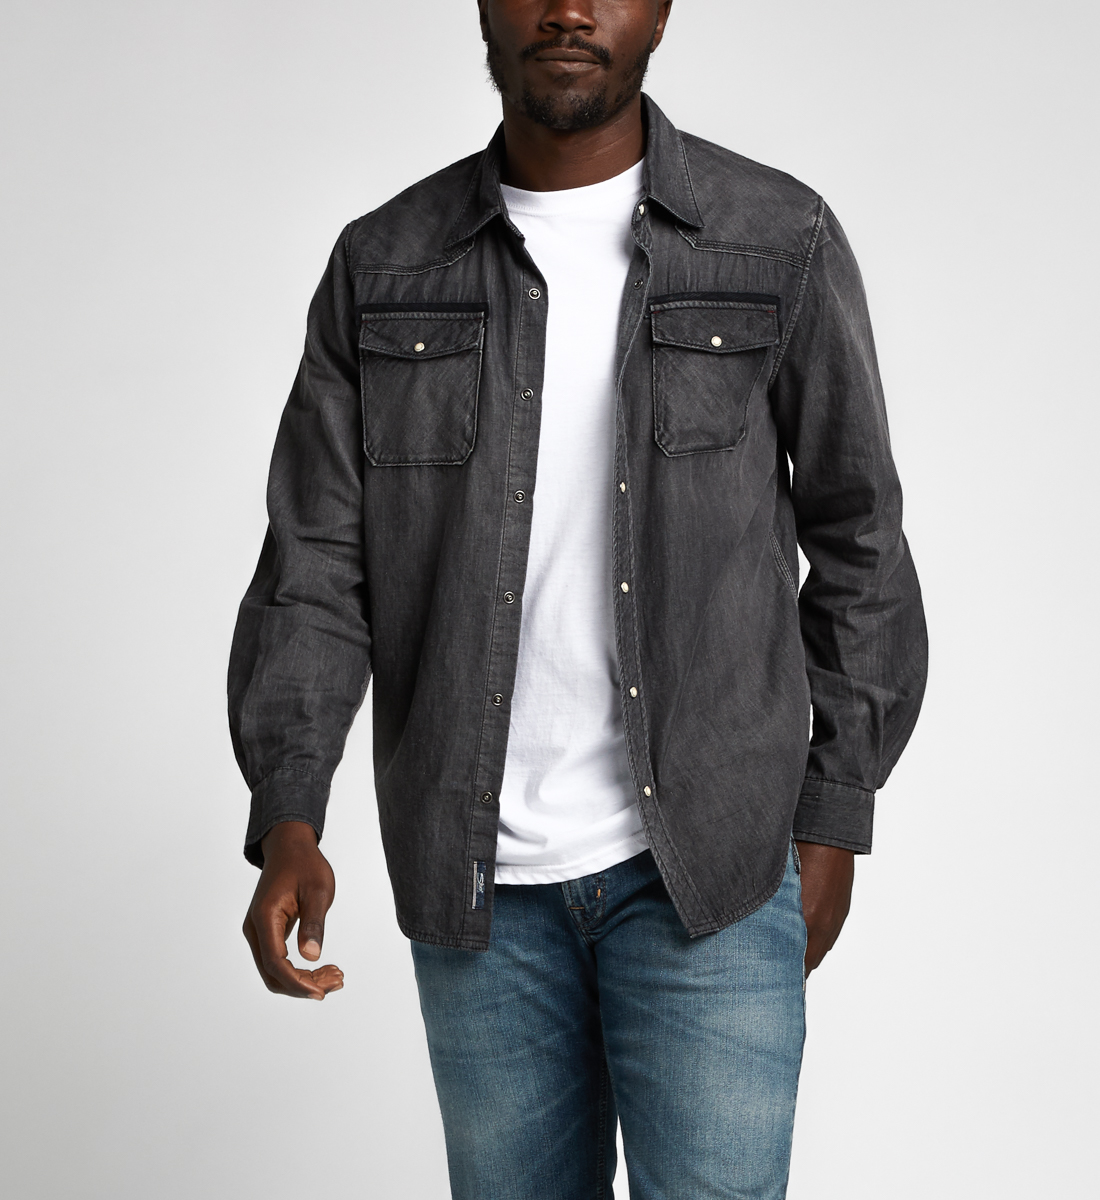 Charles Classic Denim Shirt Final Sale,Black Front